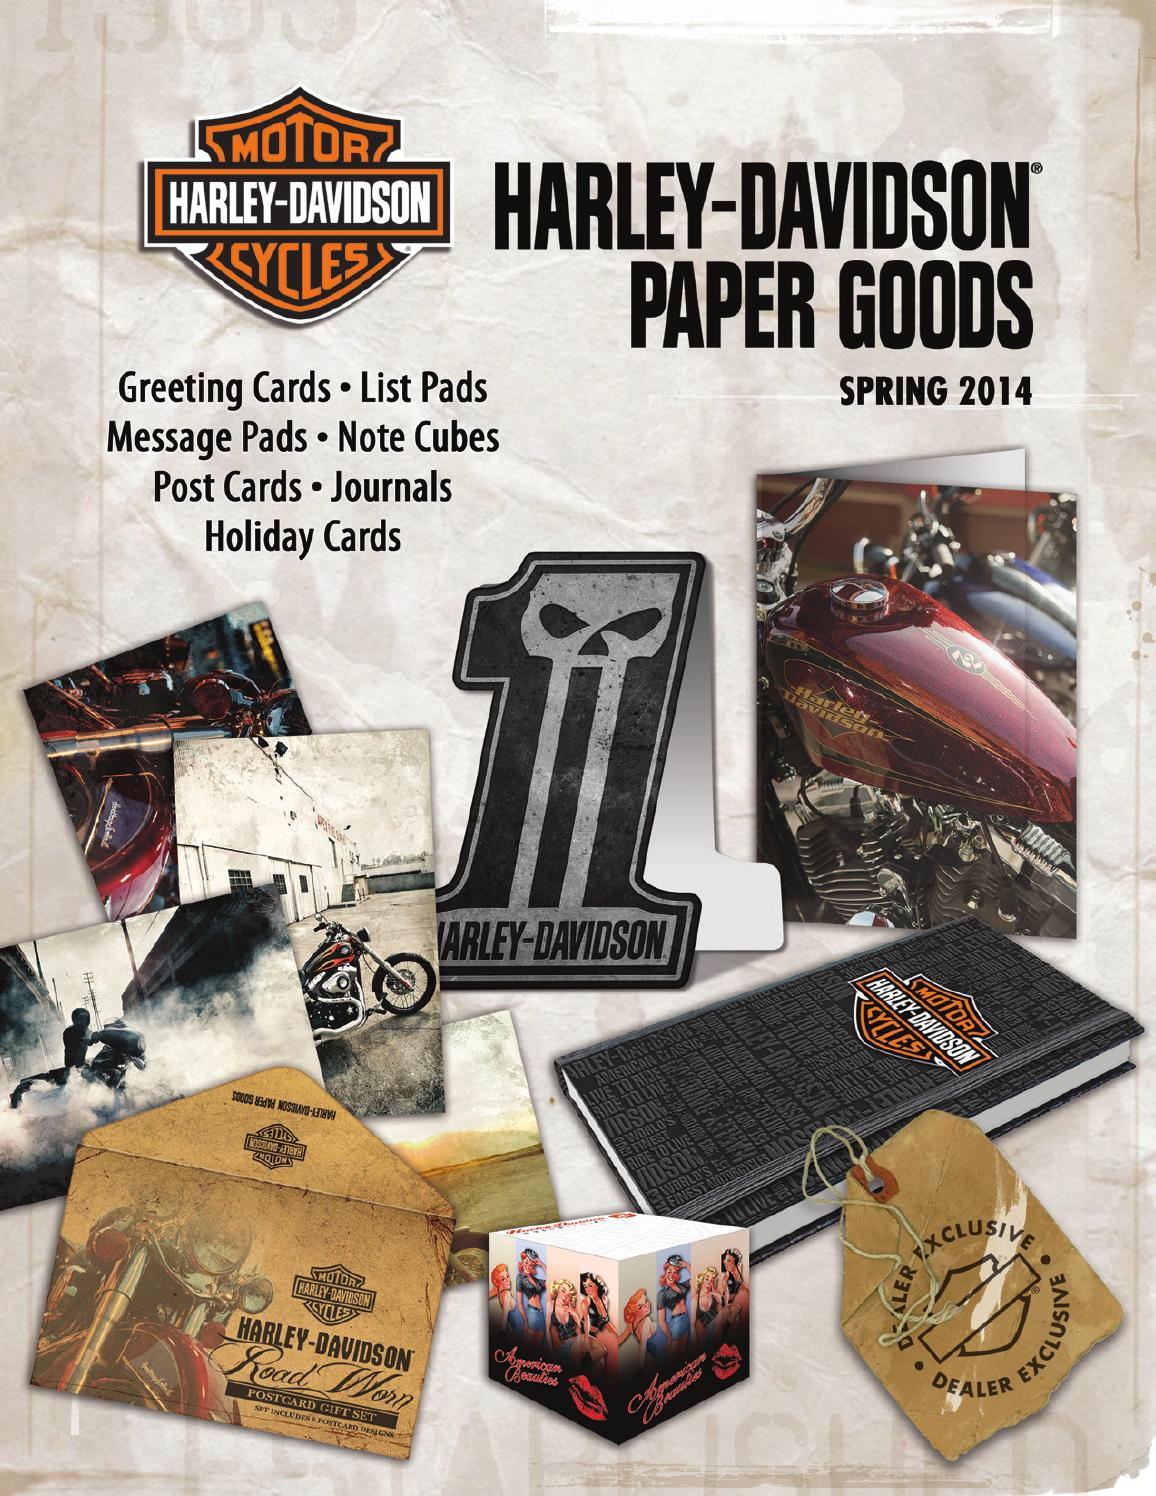 Harley davidson paper goods catalog spring 2014 dealer by ace harley davidson paper goods catalog spring 2014 dealer by ace product management group inc issuu kristyandbryce Gallery